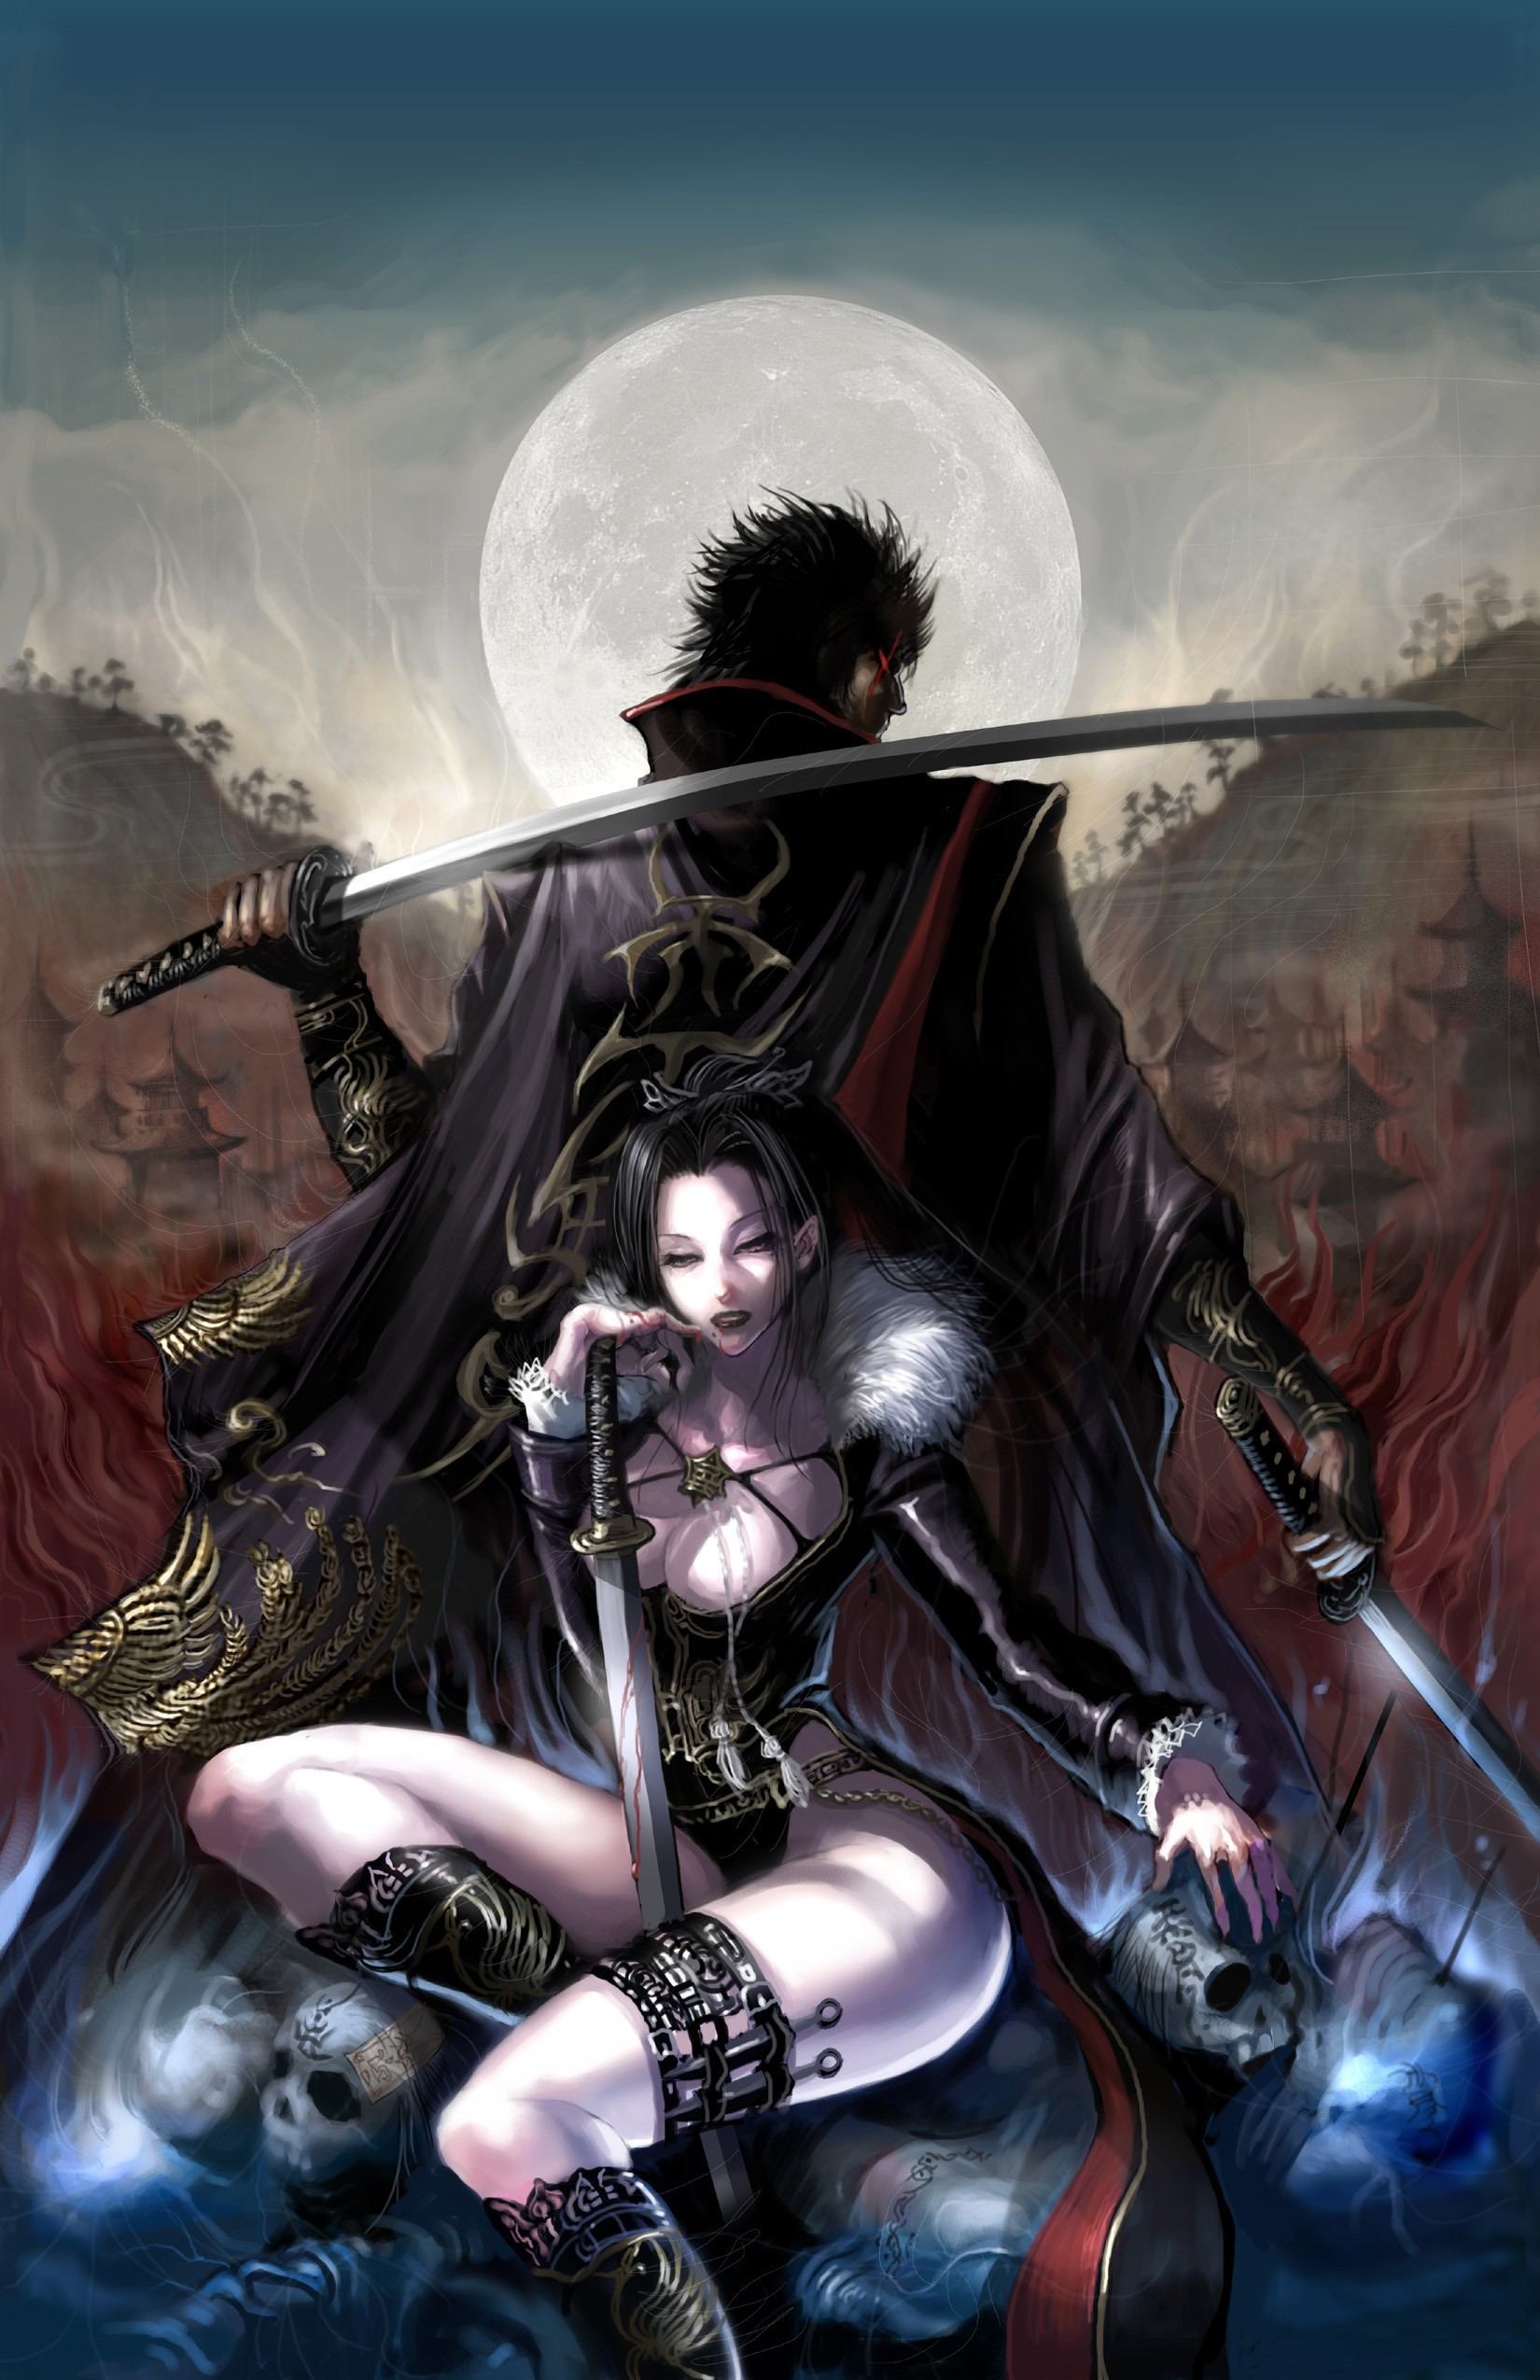 skulls comics Katana weapons HD Wallpaper